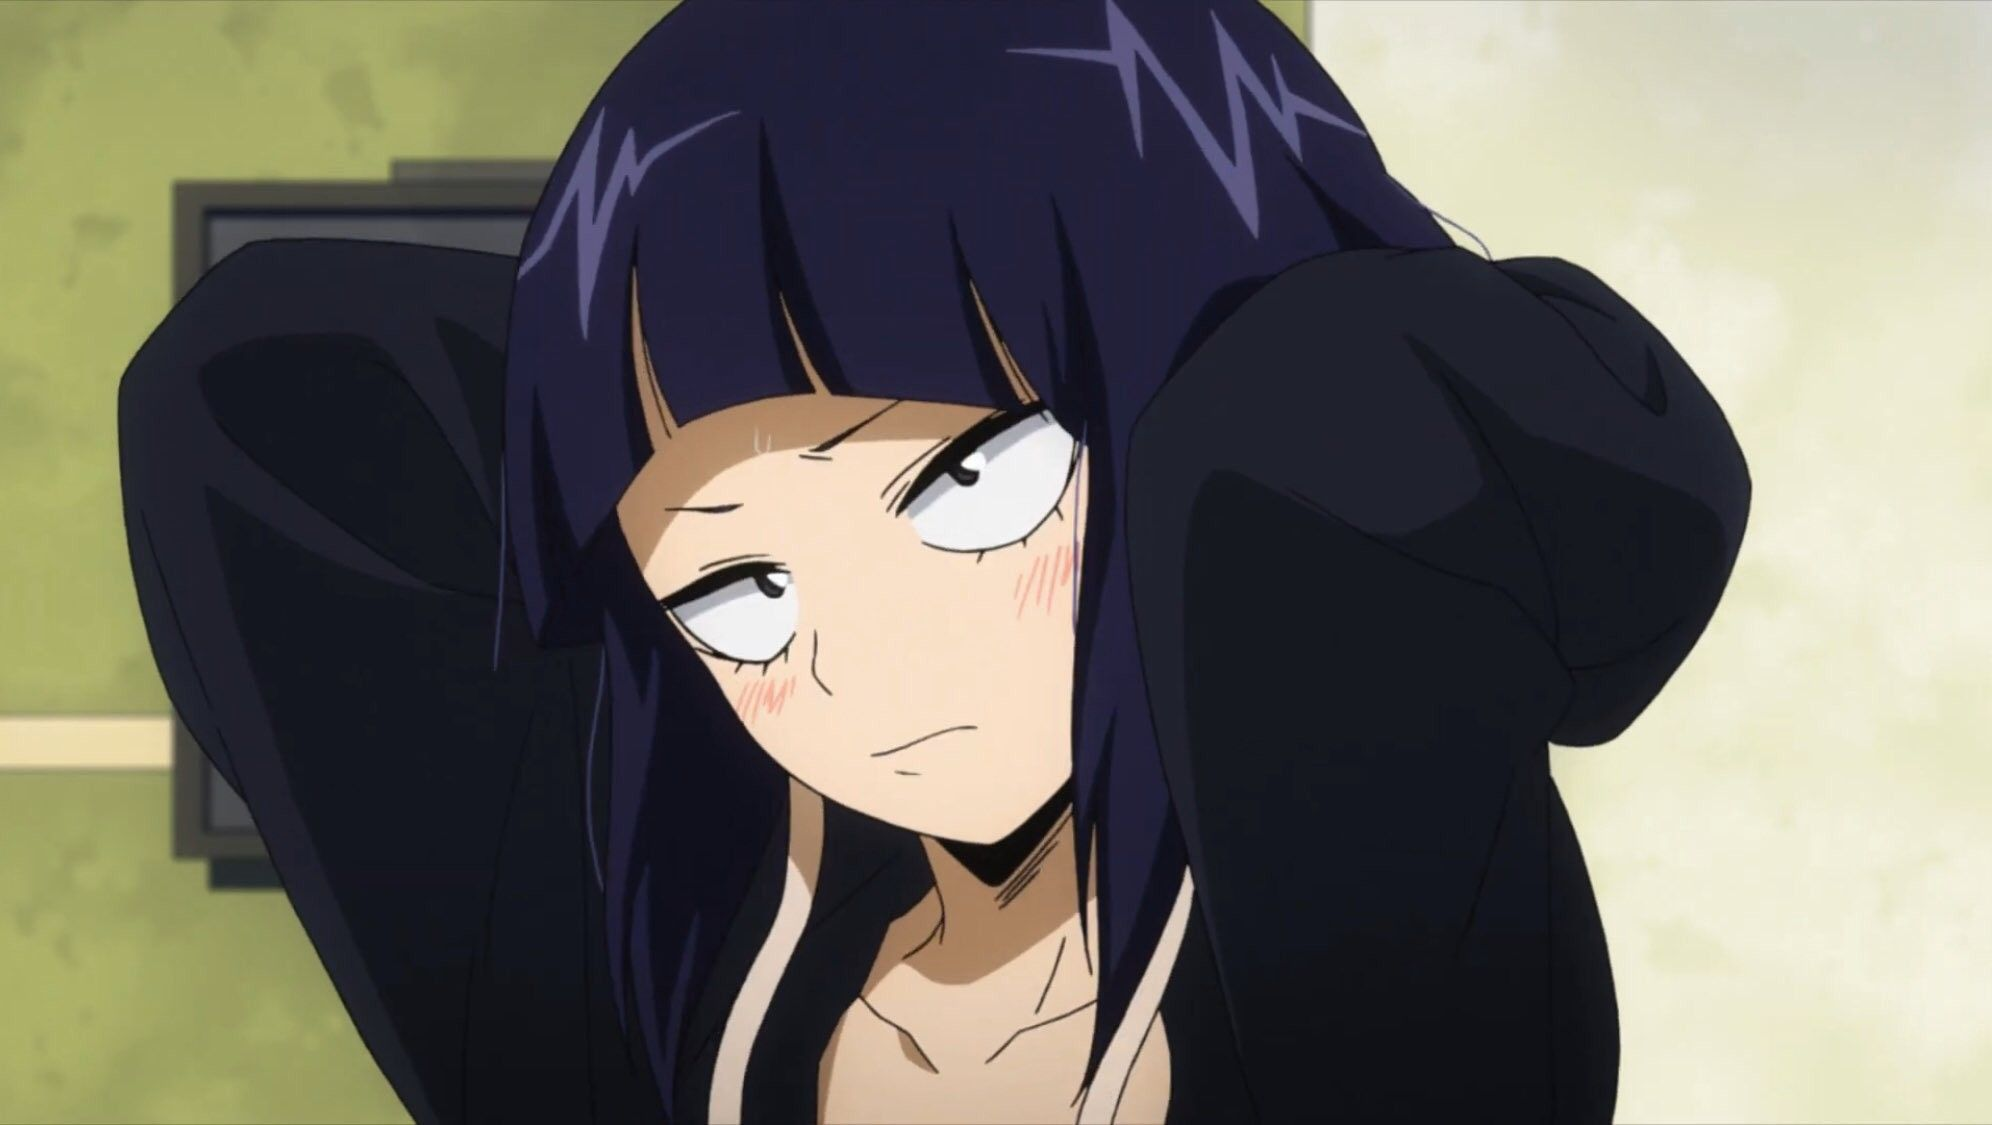 Kyoka Jiro ♡ in 2020 | My hero academia episodes, My hero academia, My hero